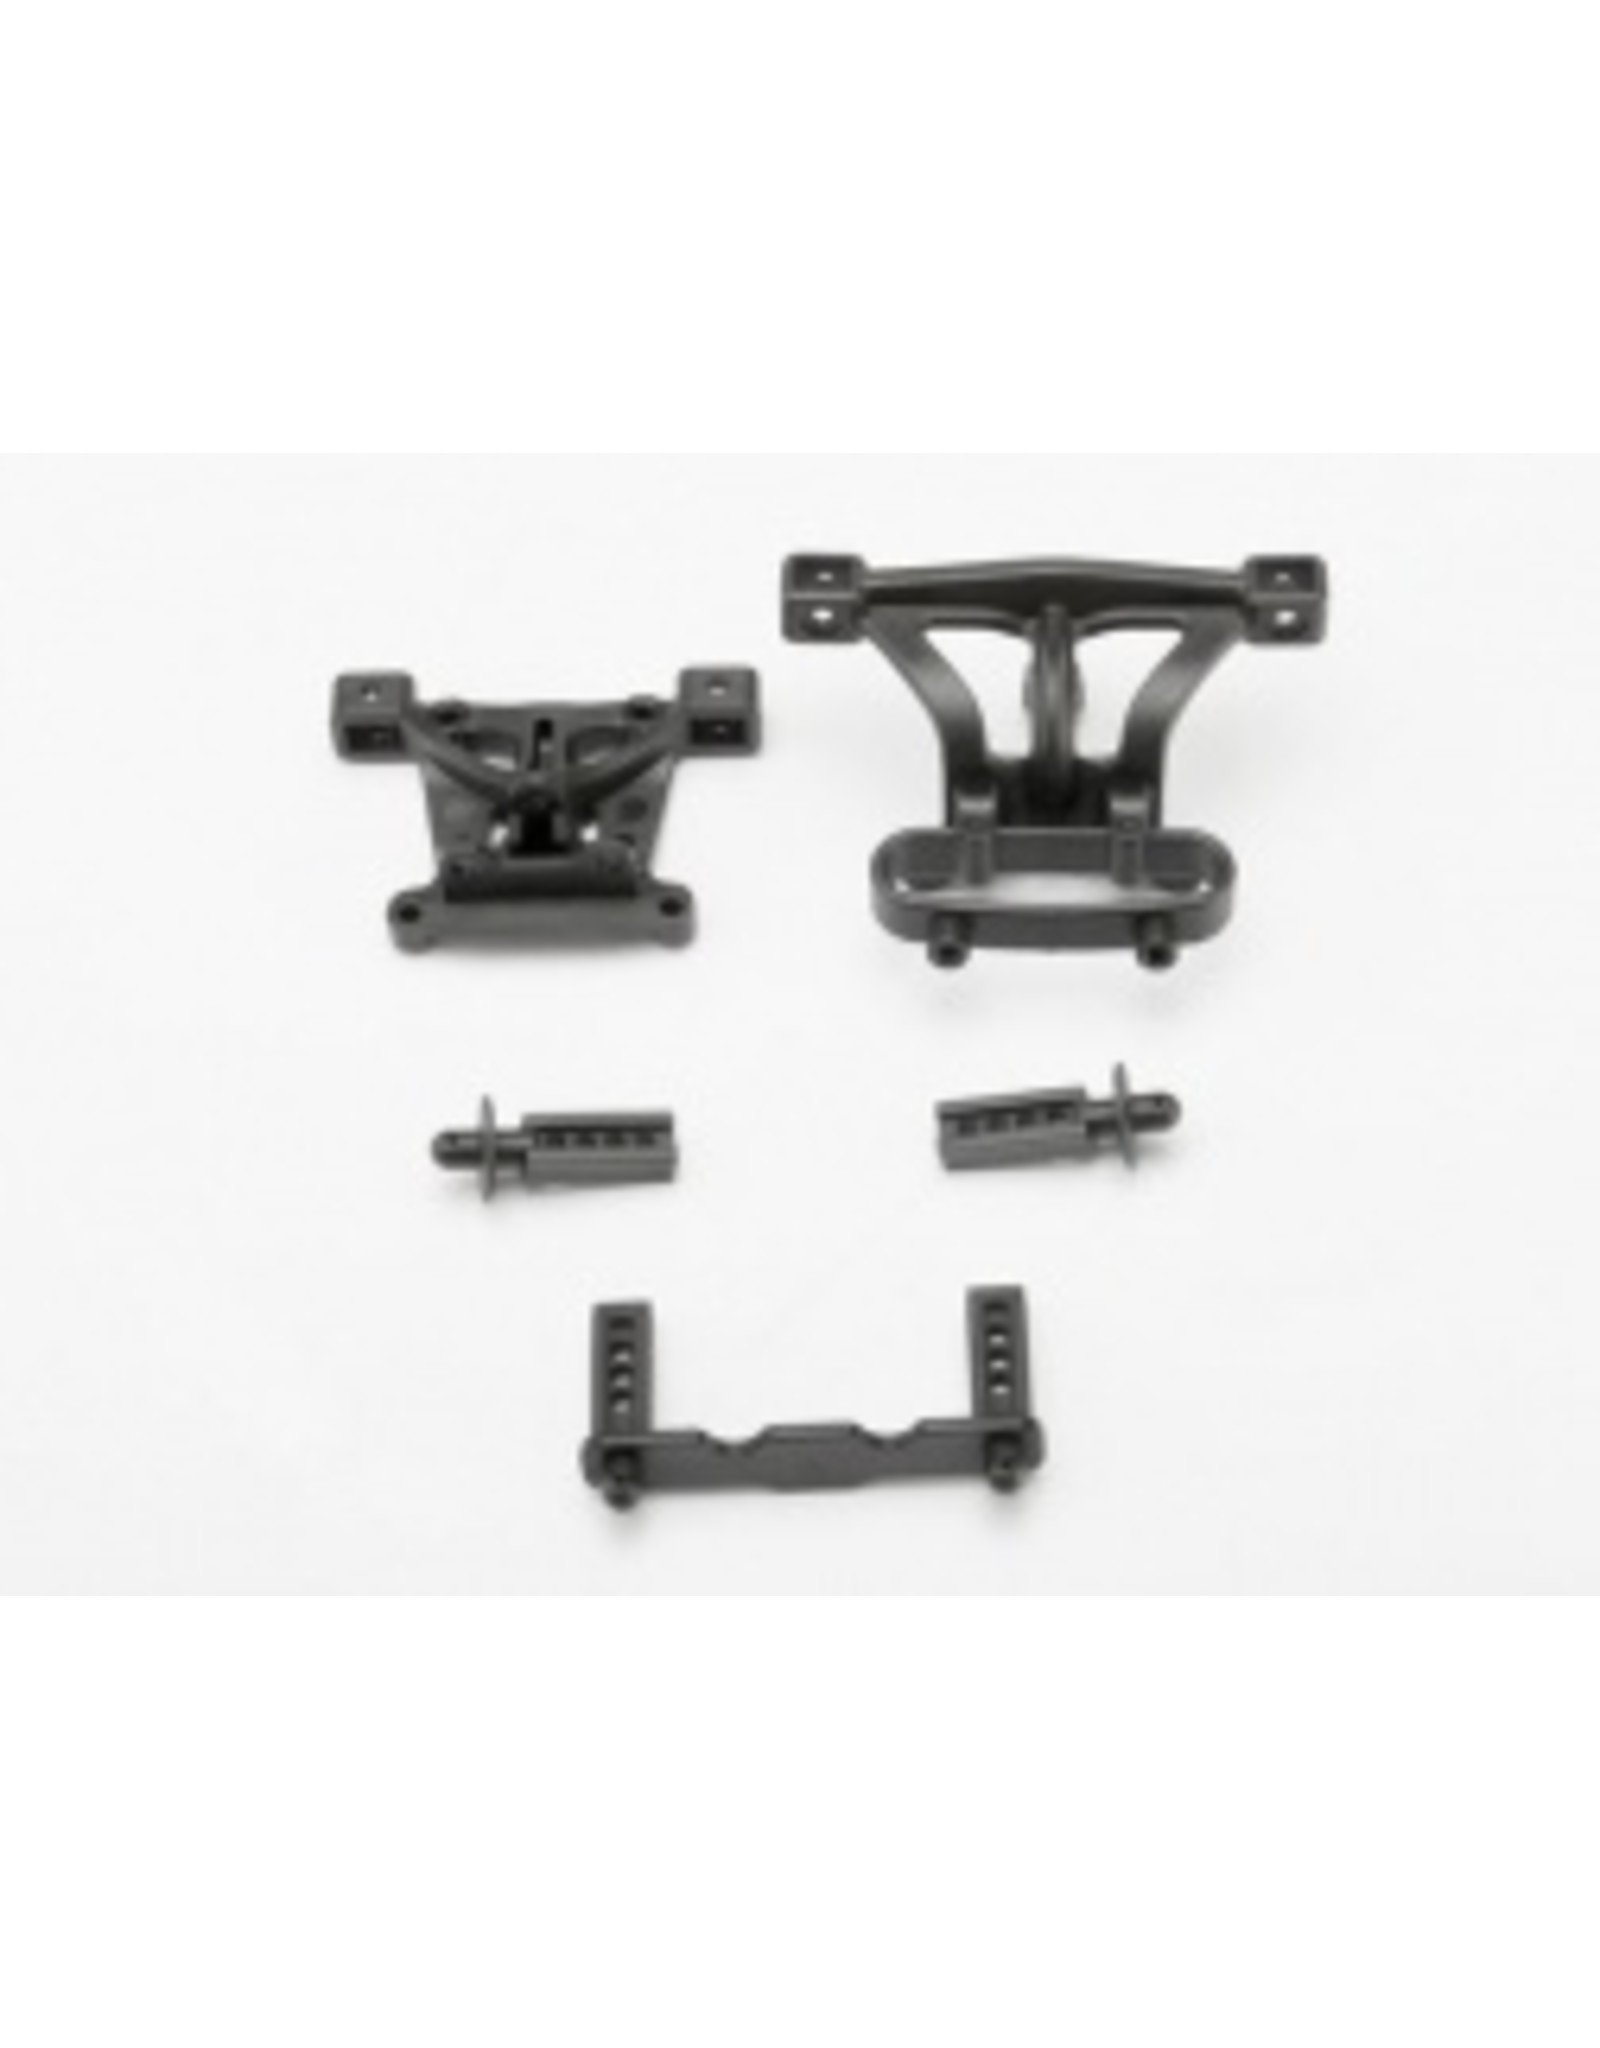 Traxxas Body Mounts and Body Posts, Front & Rear - 1/16  (TRA7015)